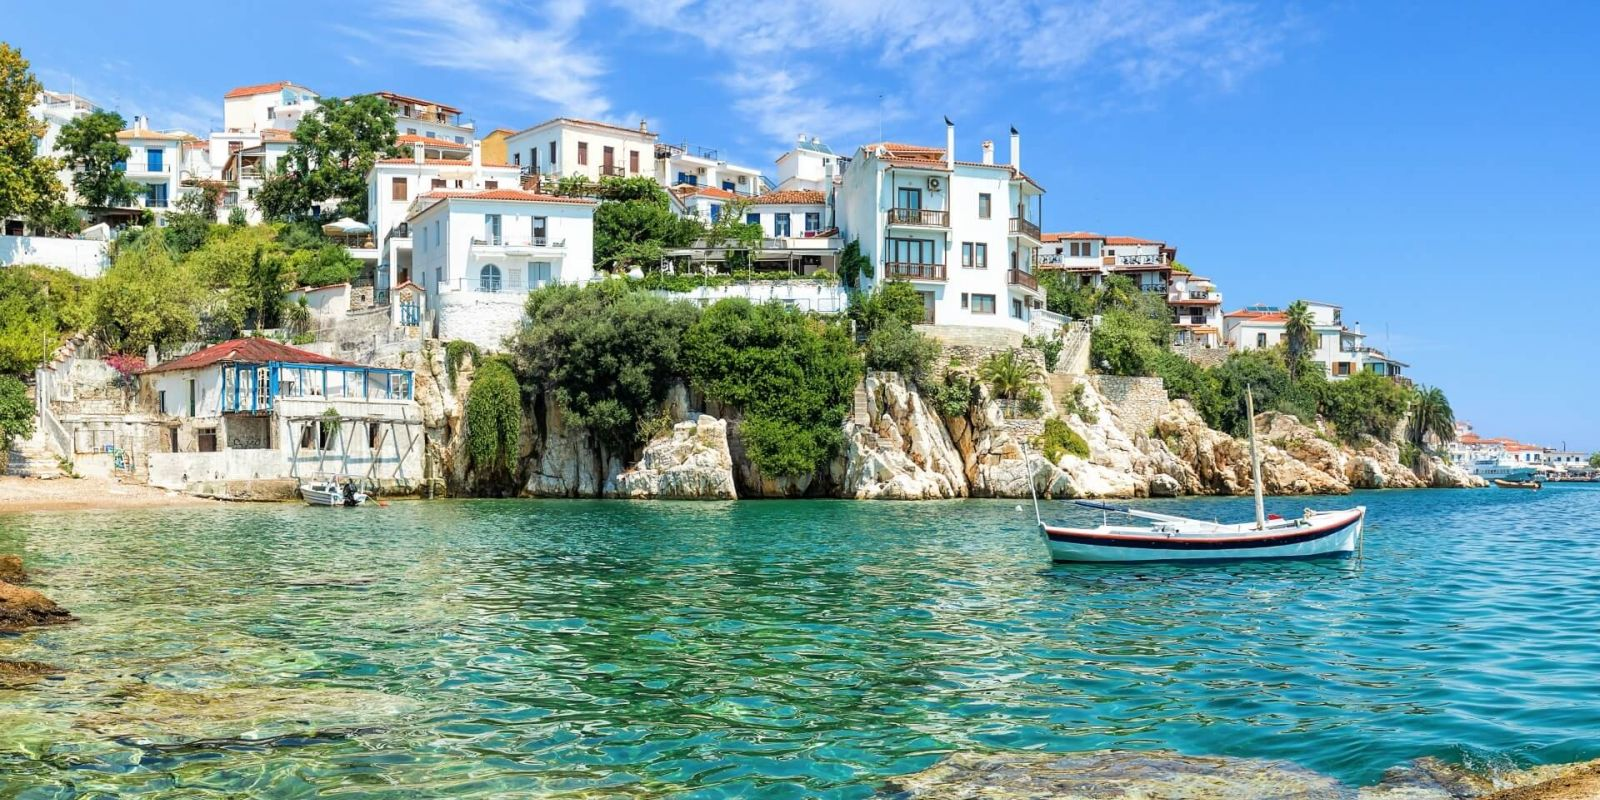 https://www.talamare.com/medias/The old port of Skiathos under a beautiful blue sky in the Sporades Islands in Greece